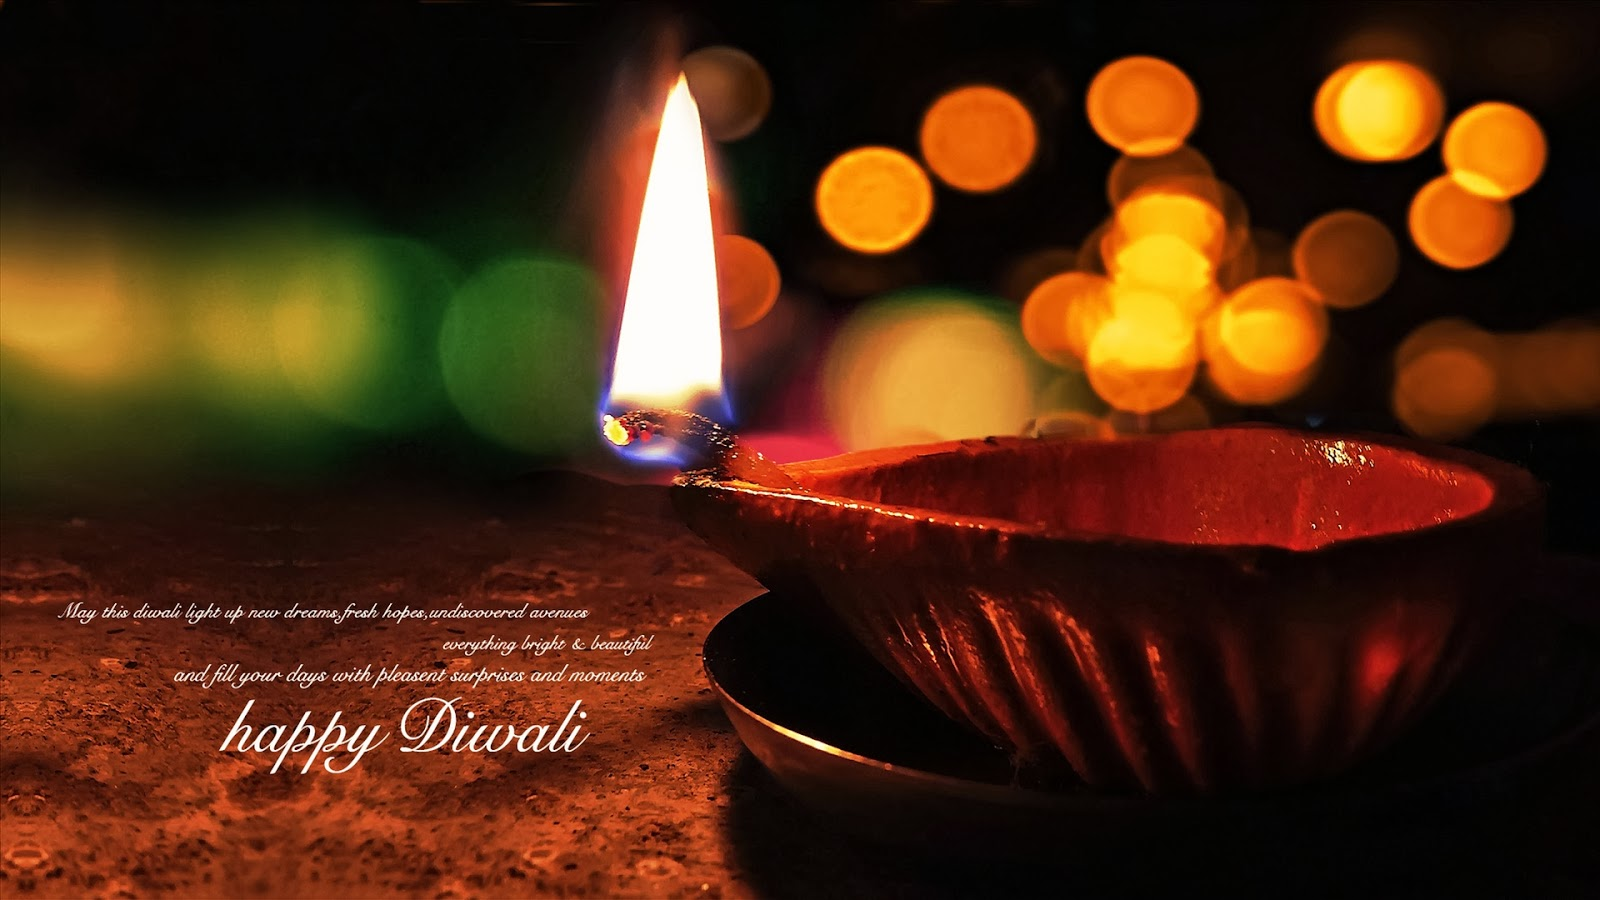 Happy diwali 2013 diwali wallpapers 2013 happy diwali wishes happy diwali 2013 diwali wallpapers 2013 happy diwali wishes happy new year 2014 wallpapers happy new year 2014 greetings new year 2014 images m4hsunfo